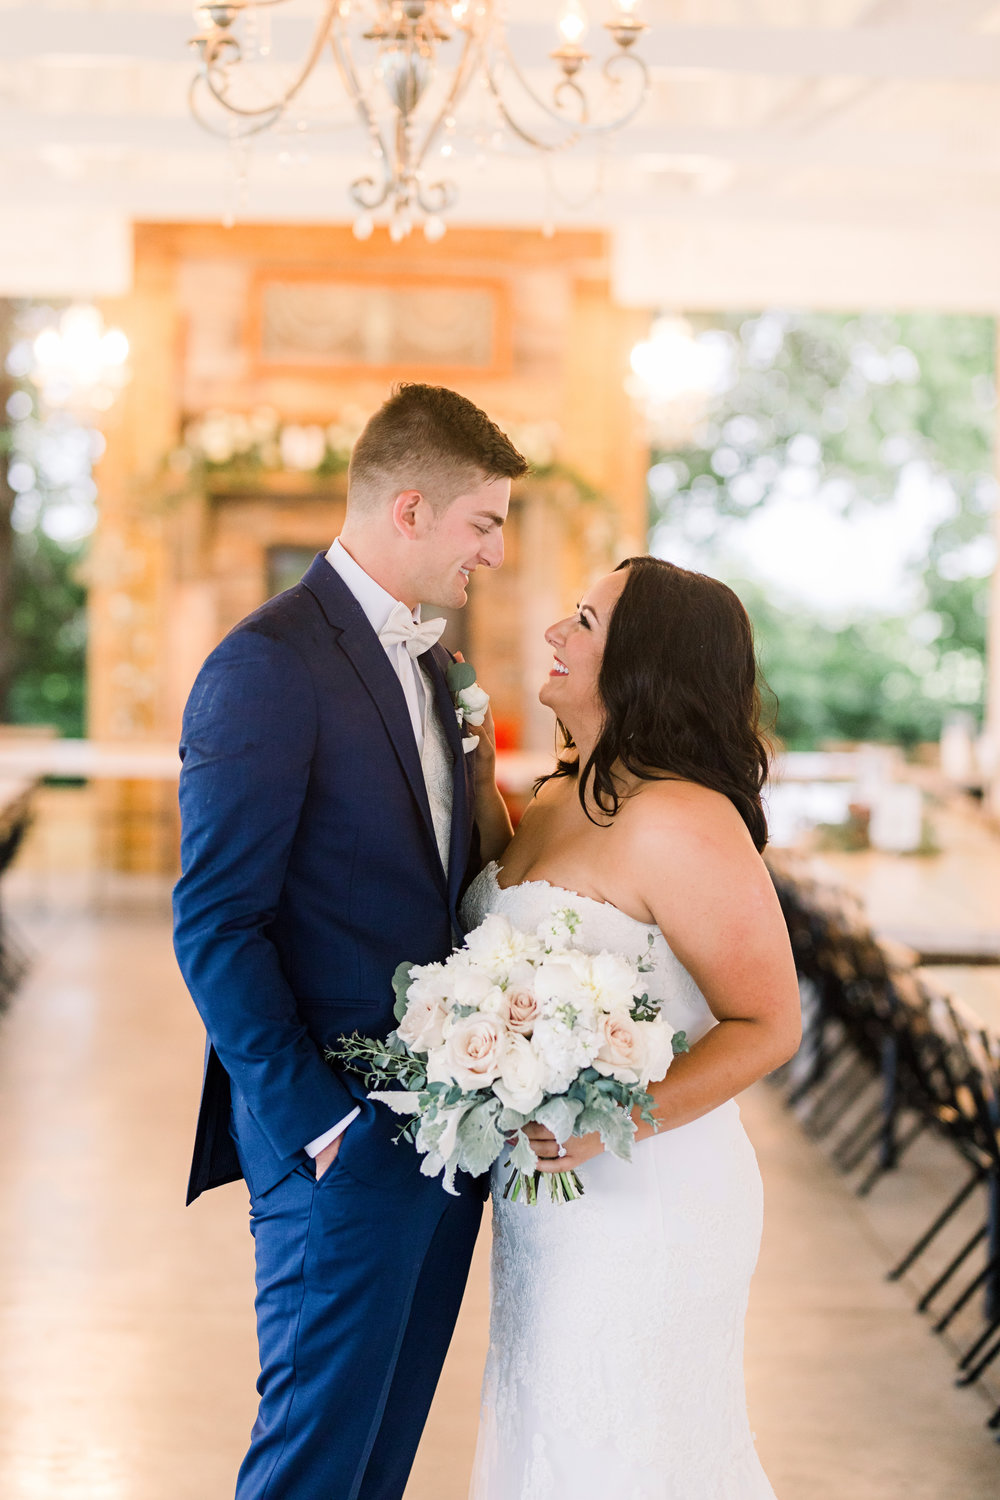 Cortnie   & Alex married 6/9/18 at Legacy Hill Farm | Photography    Cameron & Tia